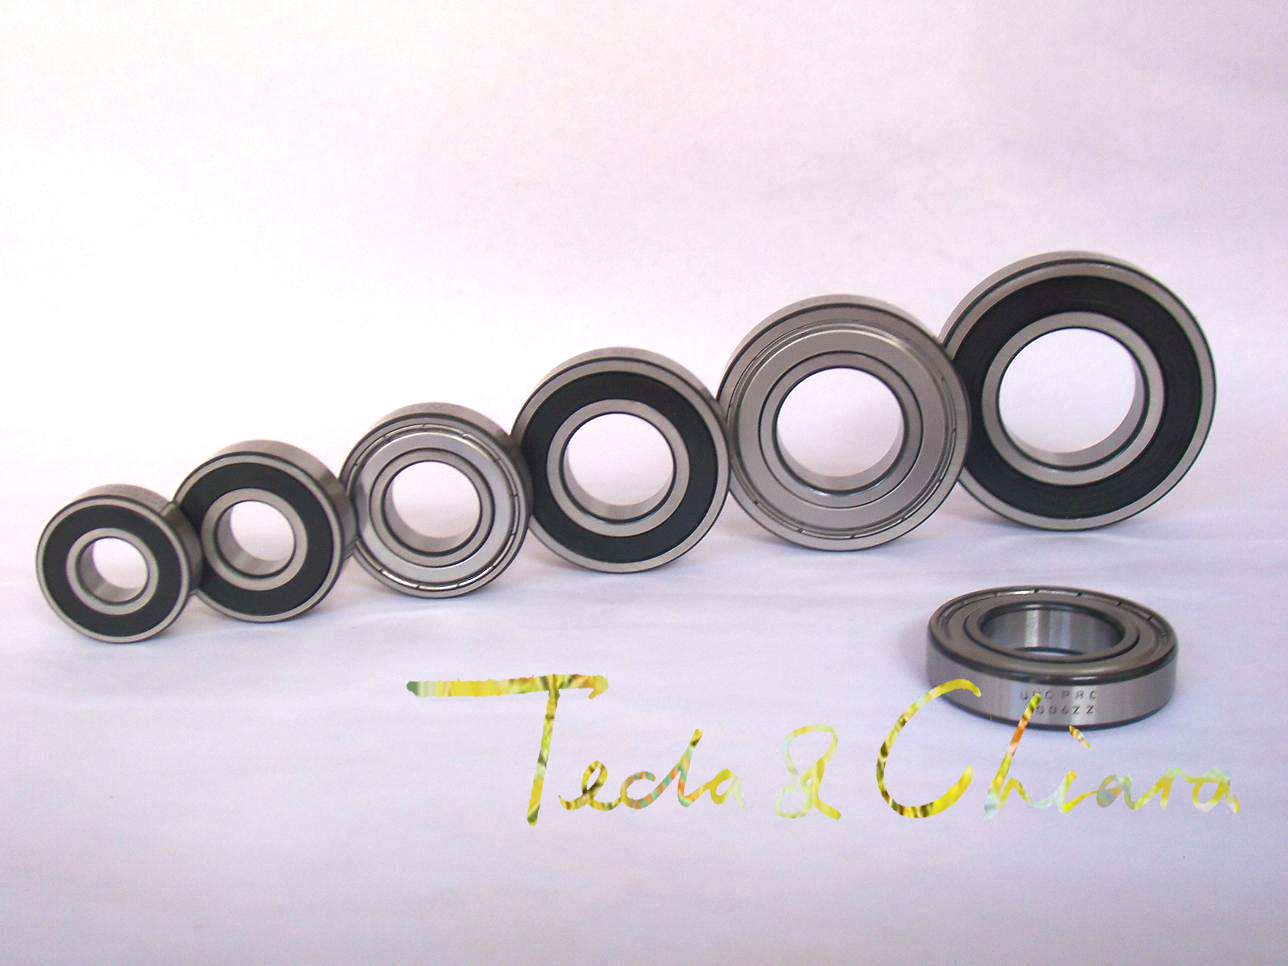 6205 6205ZZ 6205RS 6205-2Z 6205Z 6205-2RS ZZ RS RZ 2RZ Deep Groove Ball Bearings 25 x 52 x 15mm High Quality free shipping 25x47x12mm deep groove ball bearings 6005 zz 2z 6005zz bearing 6005zz 6005 2rs